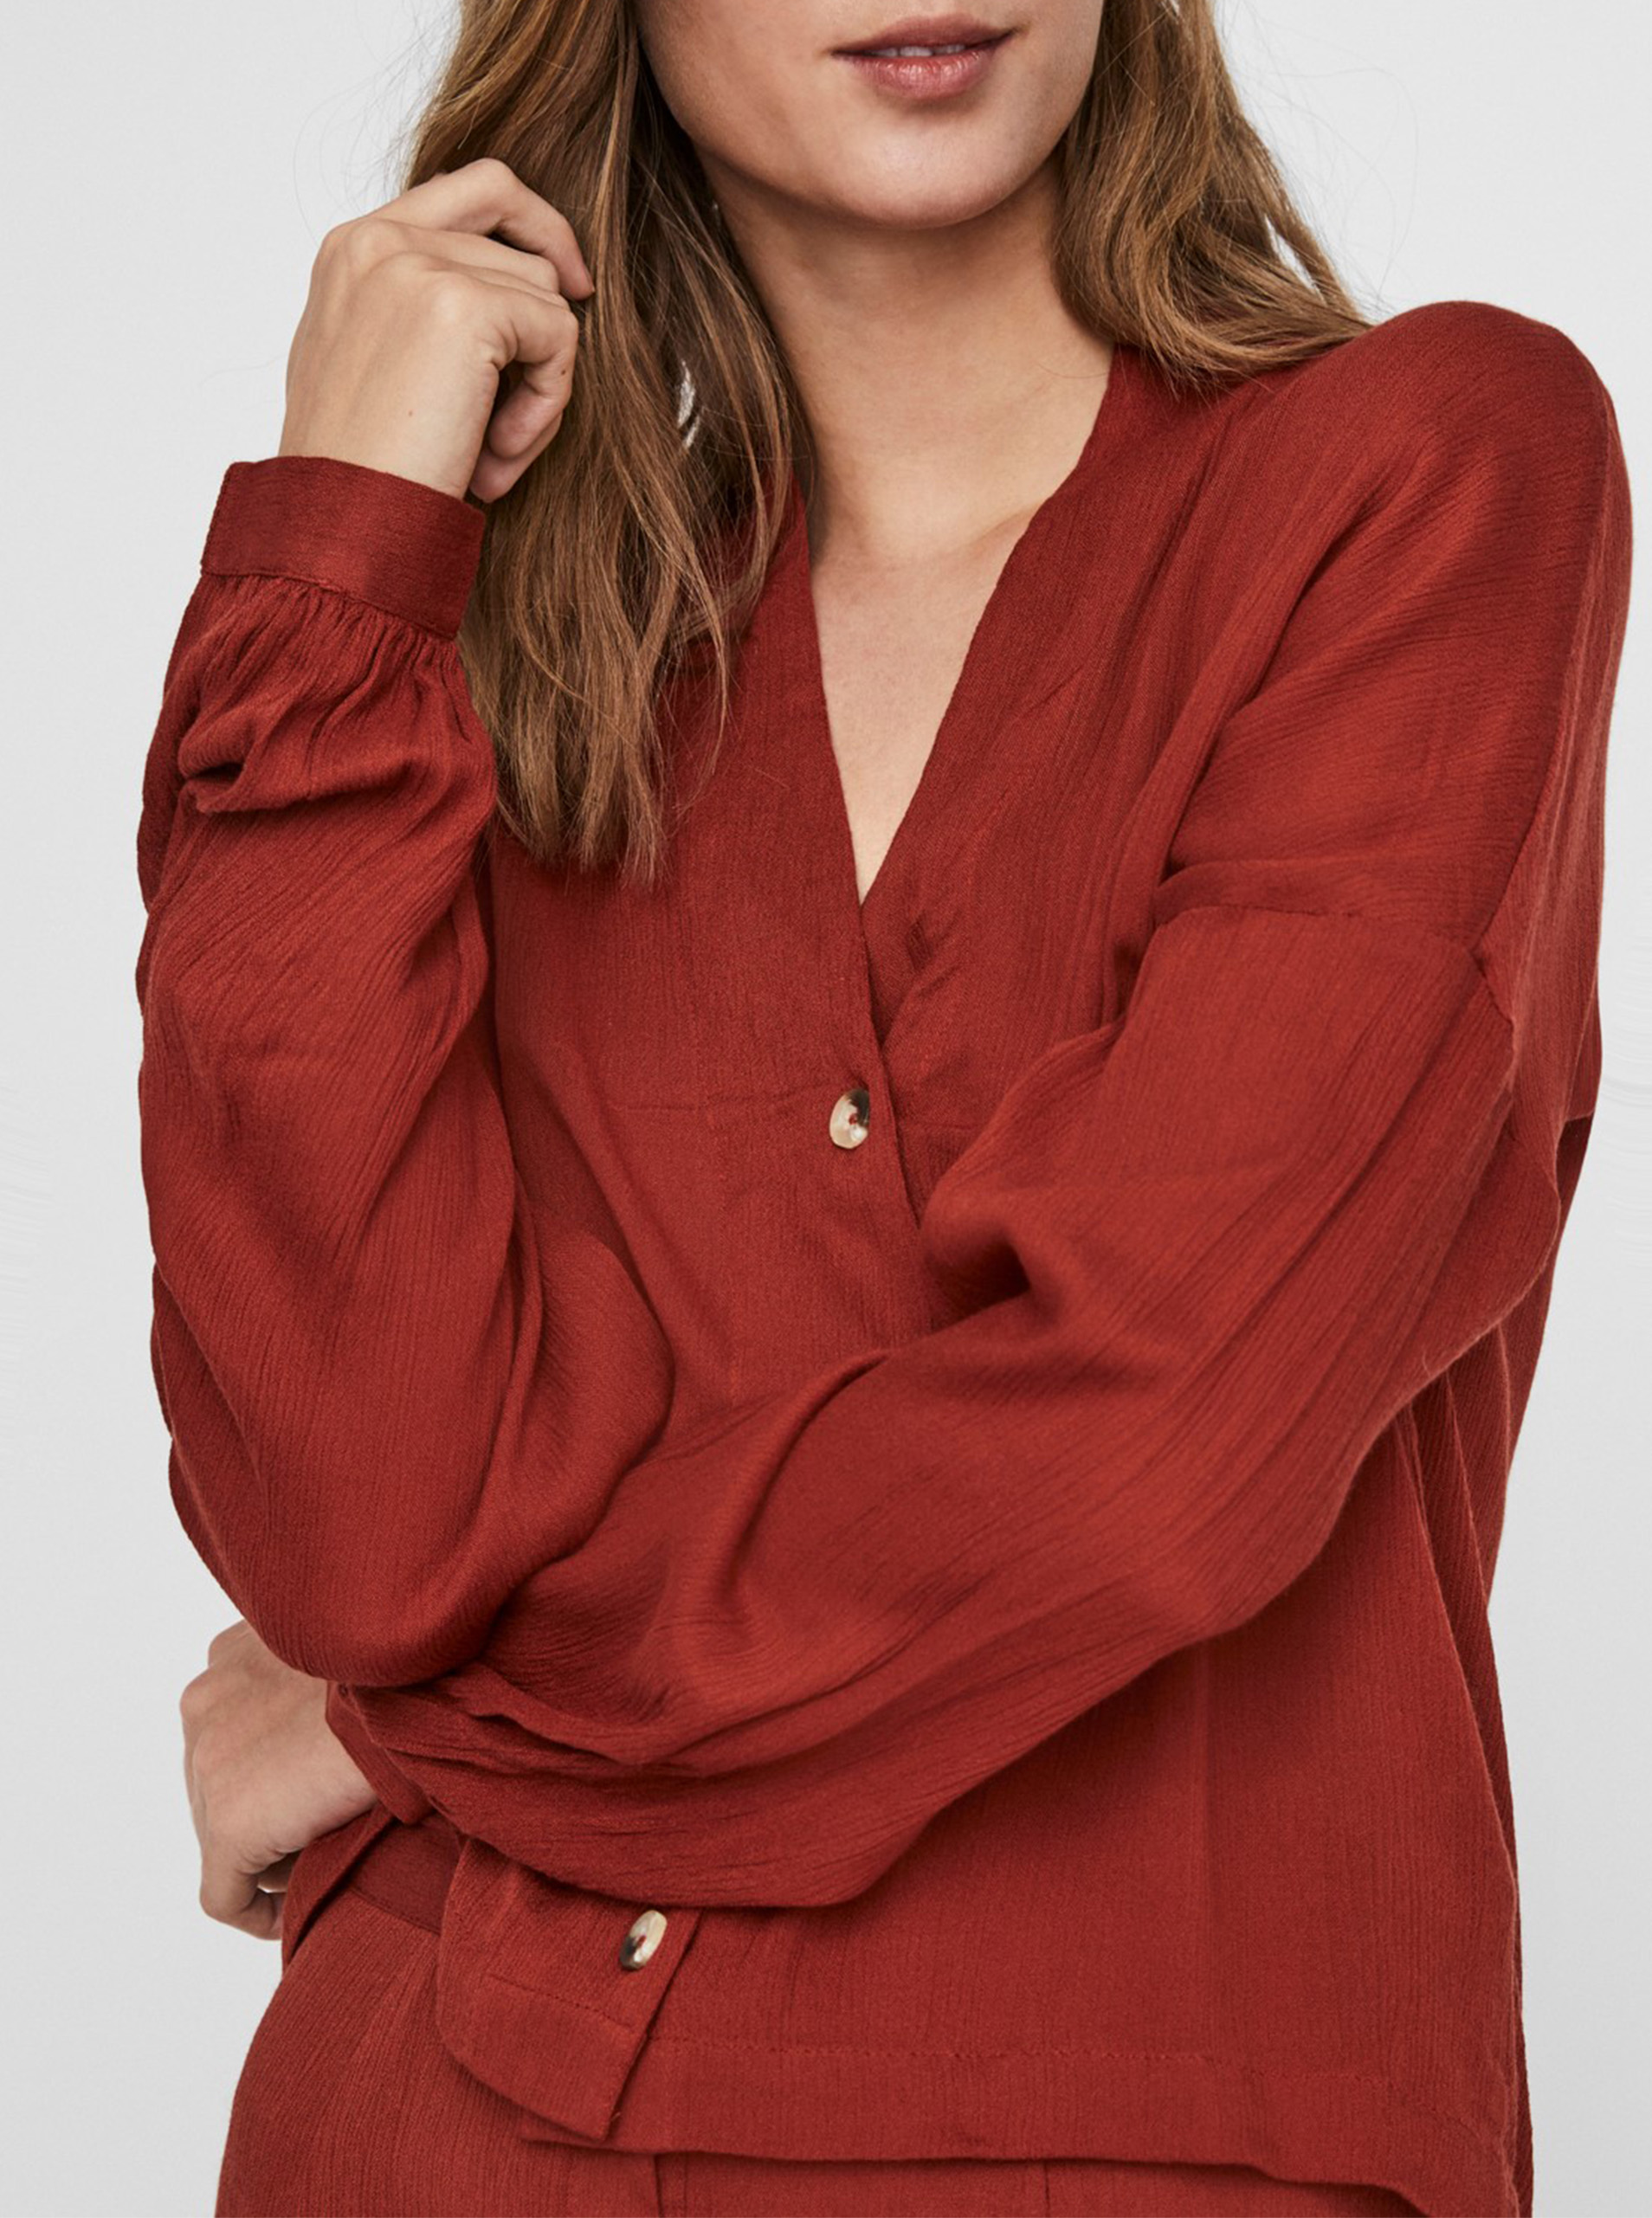 Noisy May Fleur red blouse